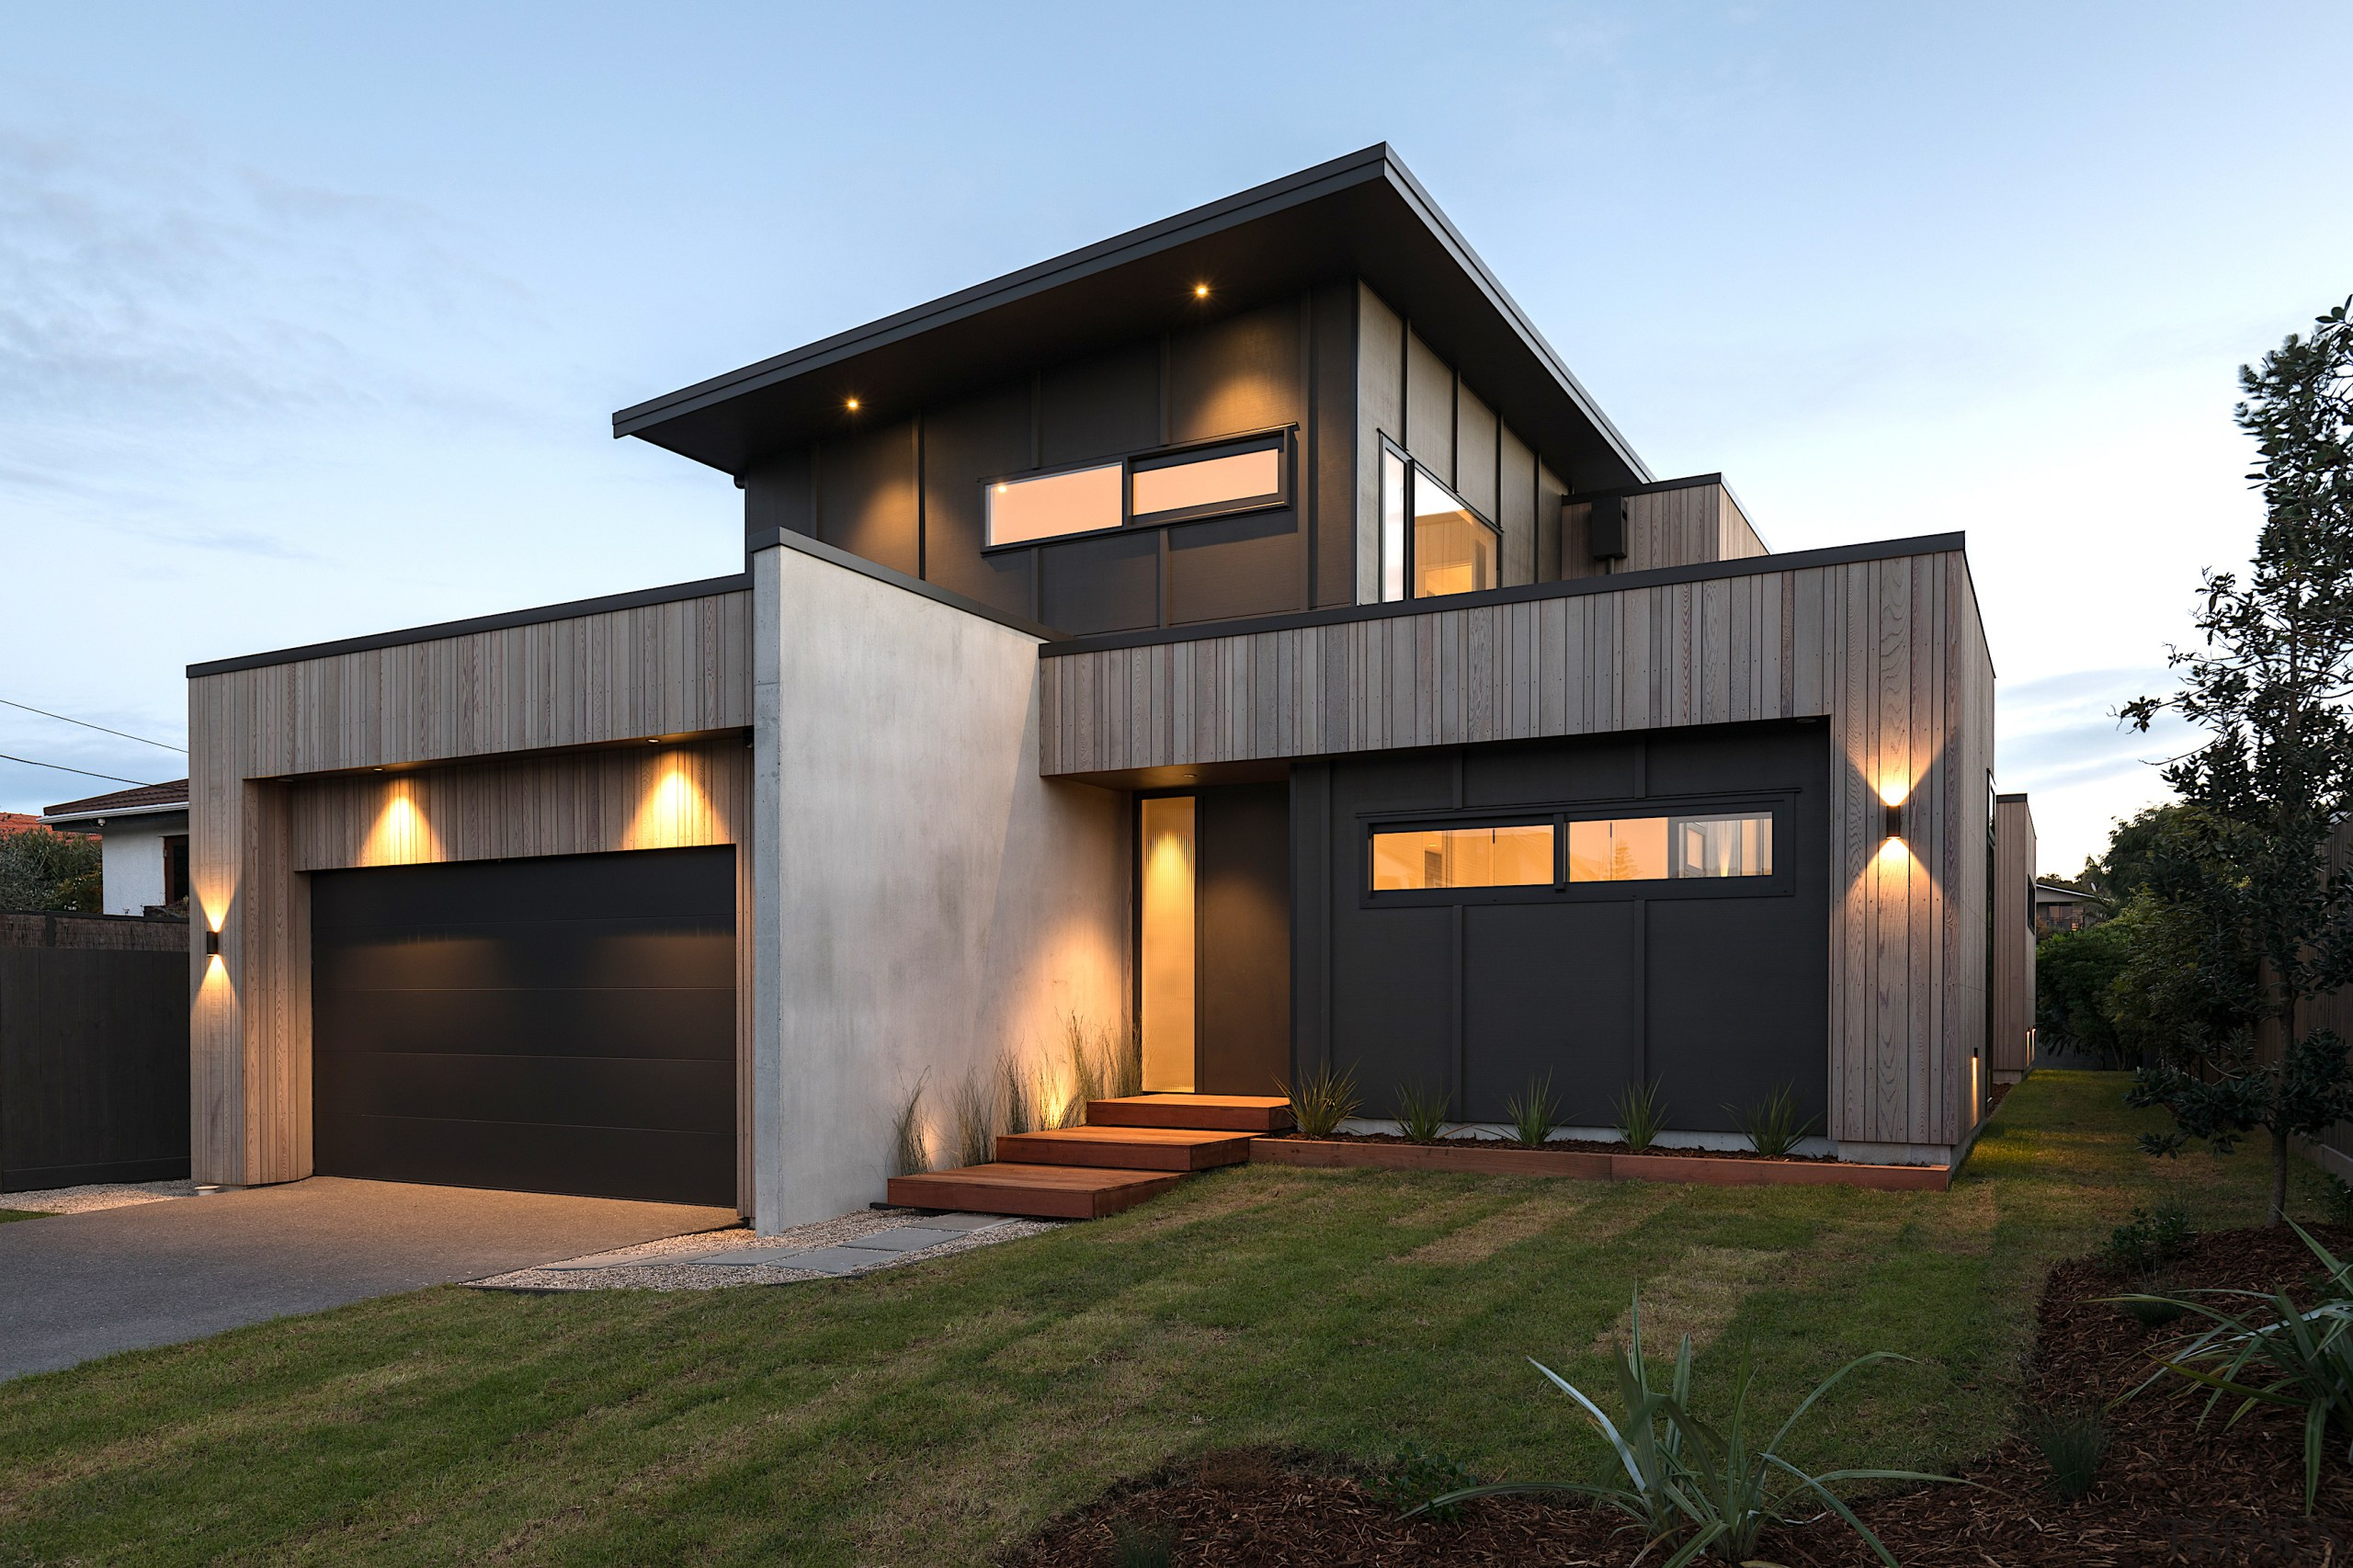 Designed by JMAC Architects, this home's sophisticated modern